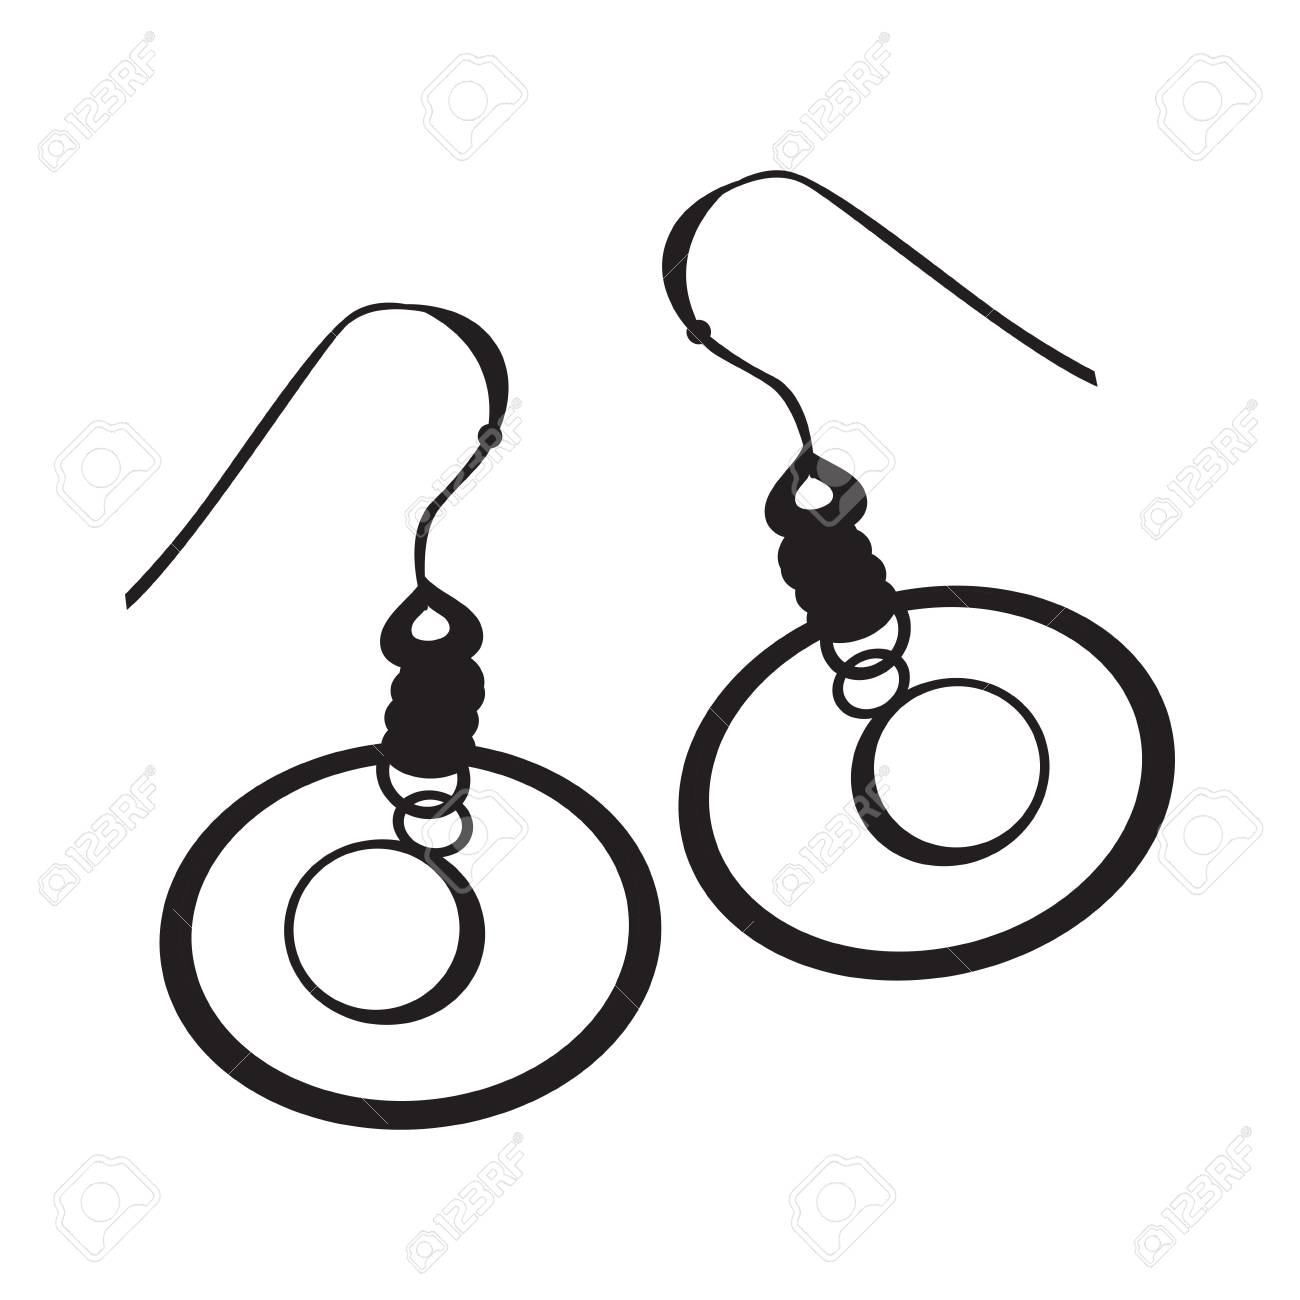 Silhouette of a pair of earrings, Vector illustration.